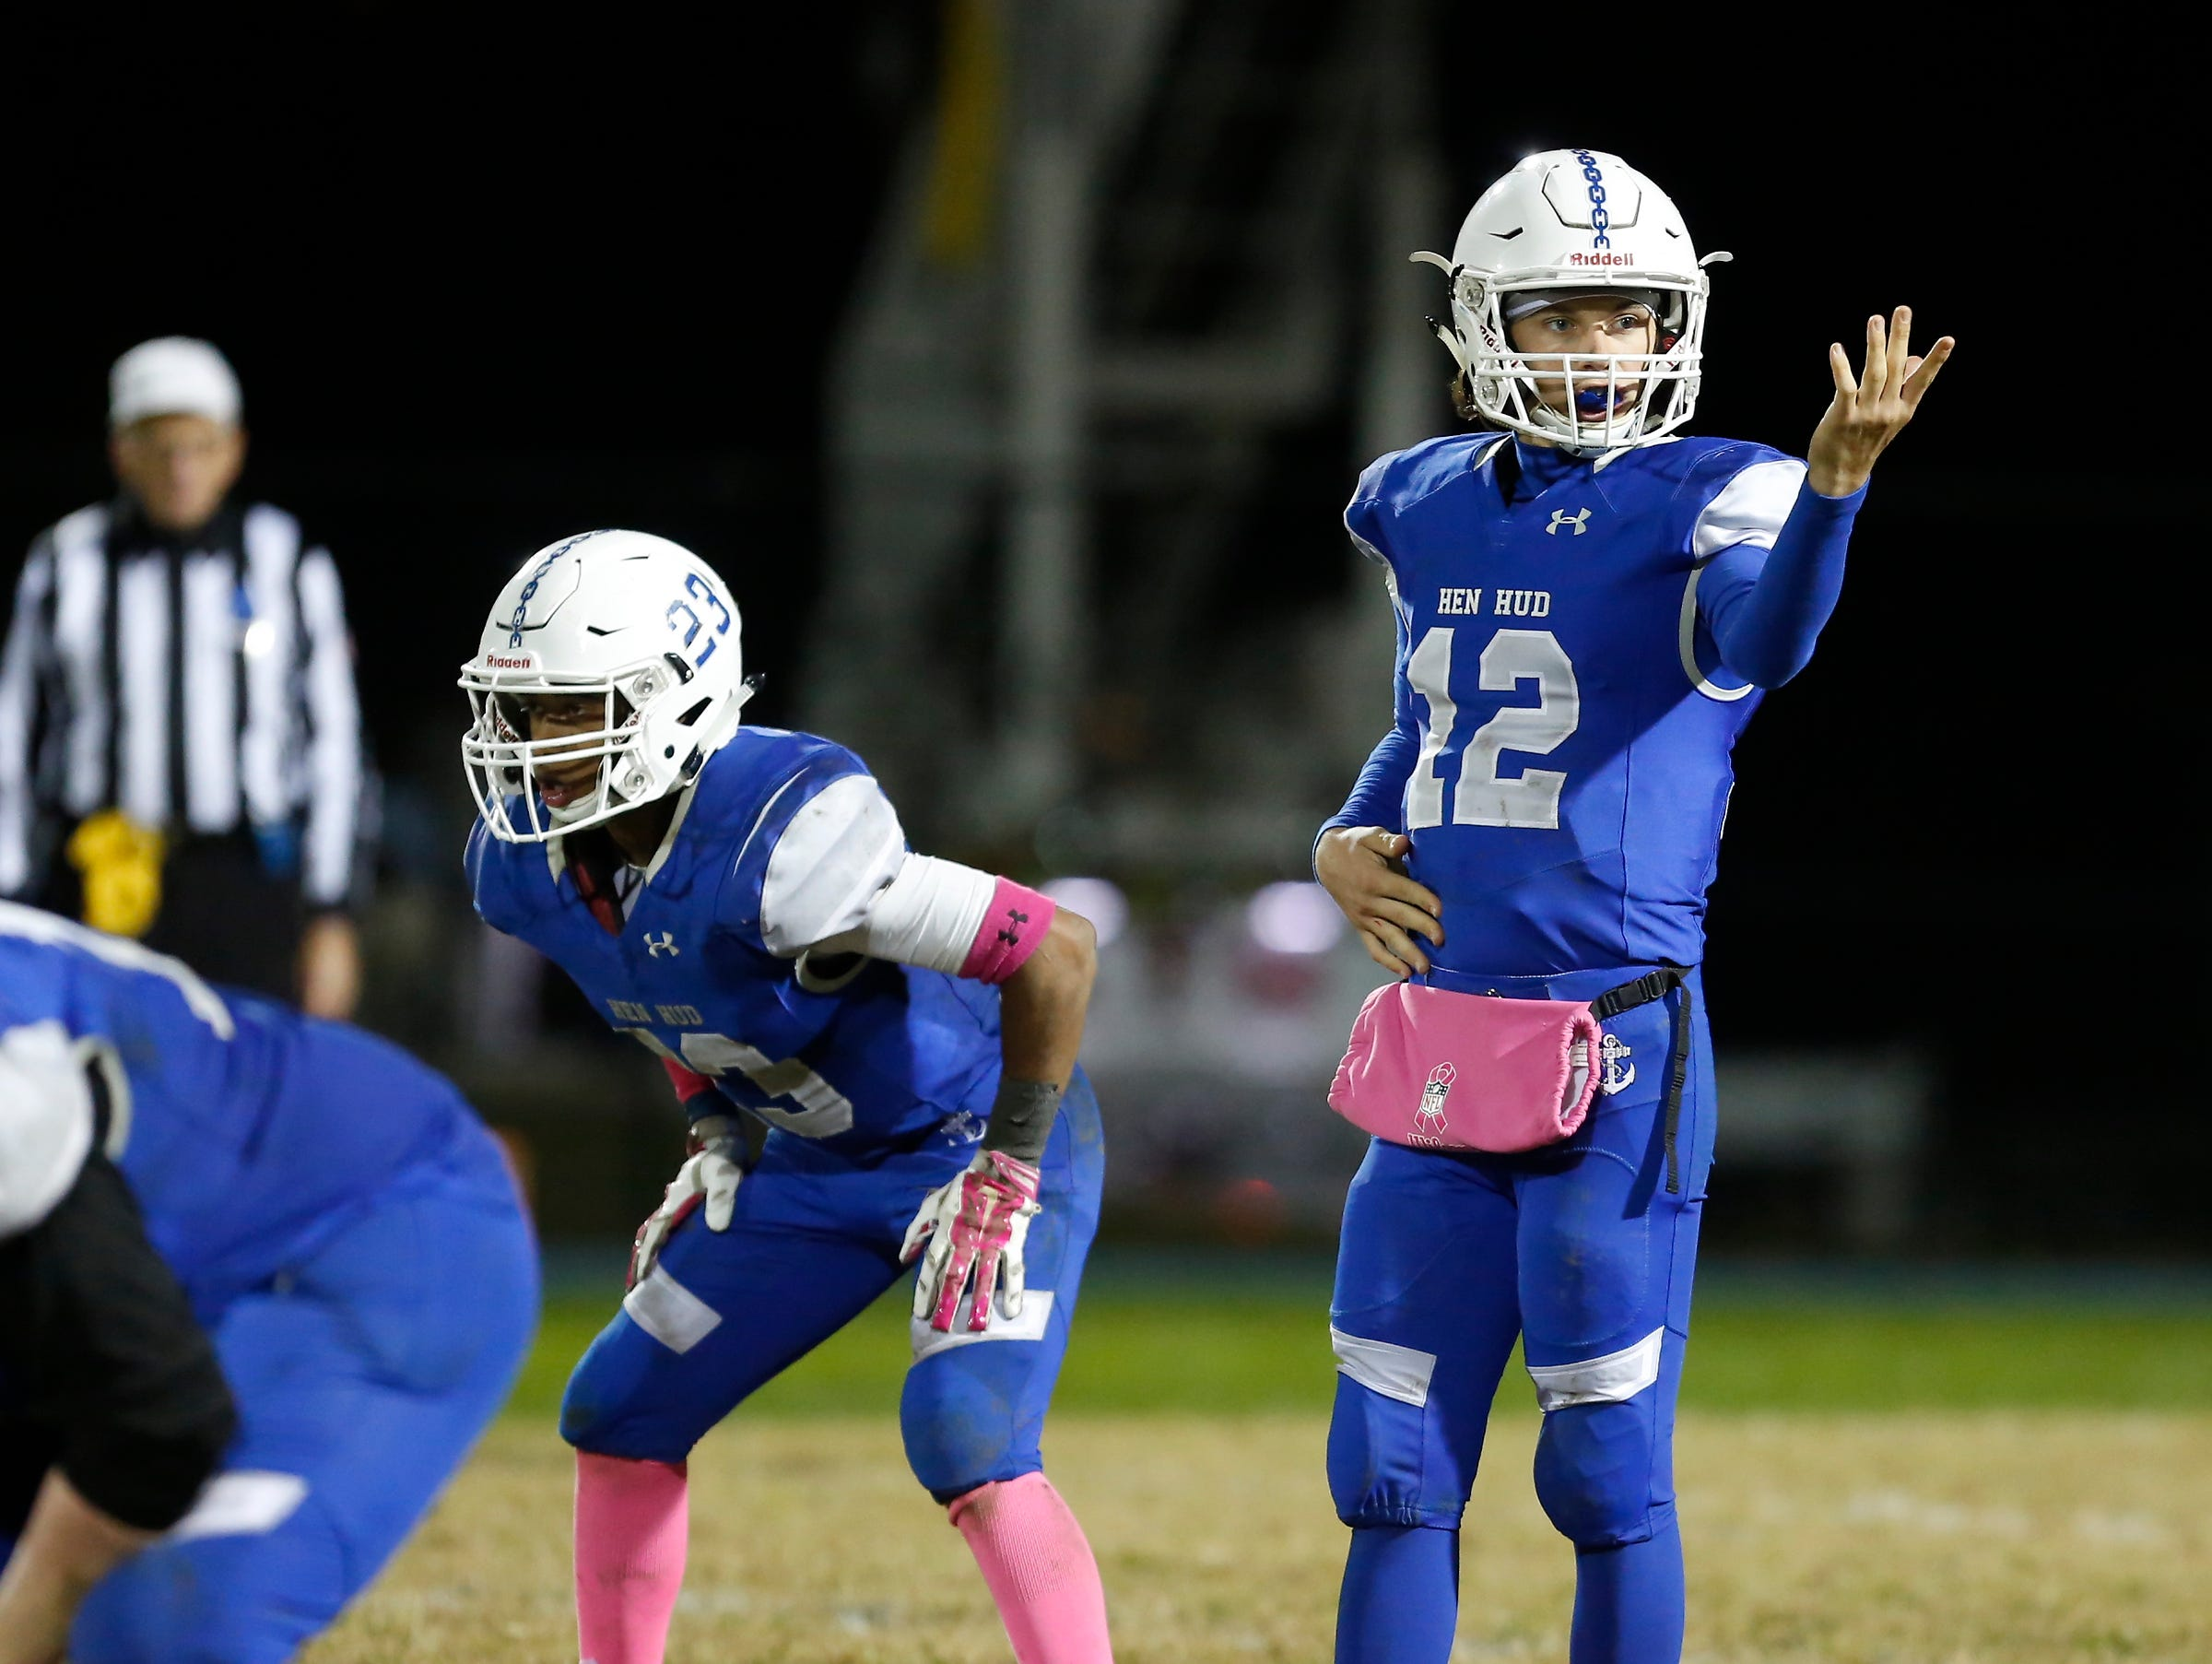 Quarterback Nick Cunningham and Hen Hud defeated Tappan Zee 20-14 in a Class A qualifying round game at Hendrick Hudson High School in Montrose on Friday night.